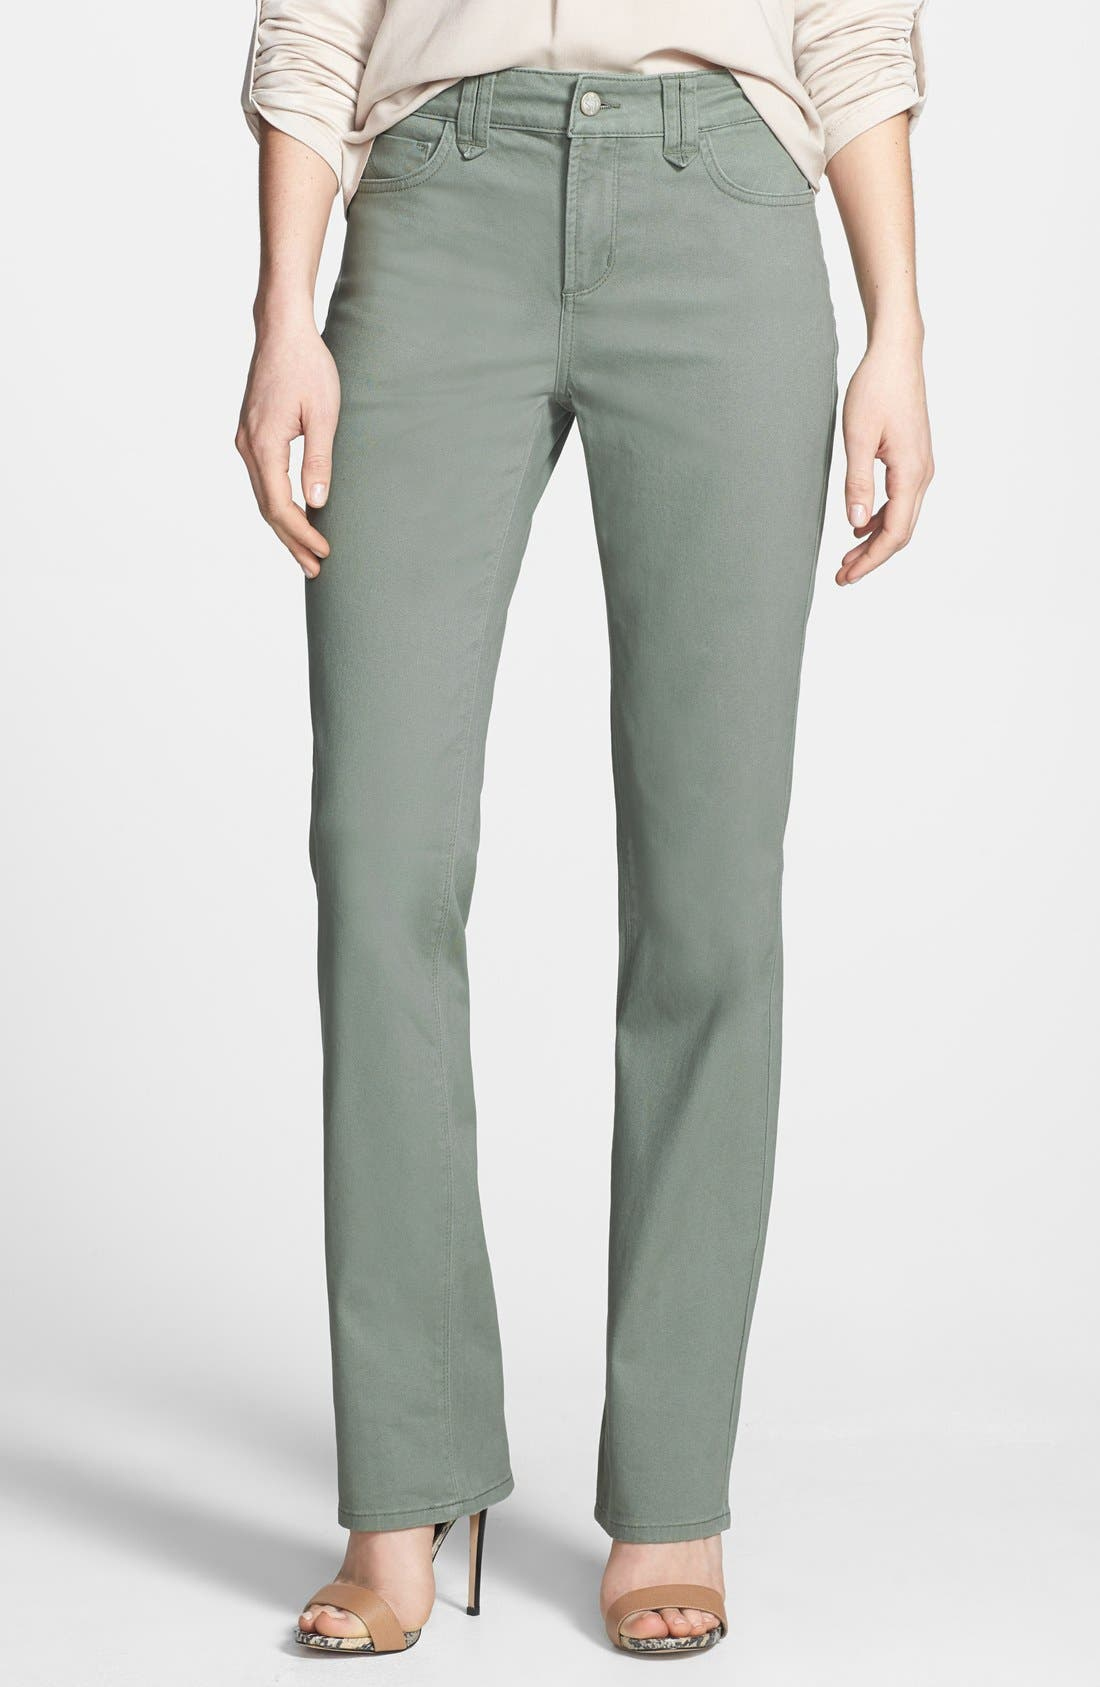 Main Image - NYDJ 'Hayden' Stretch Twill Straight Leg Jeans (Regular & Petite)